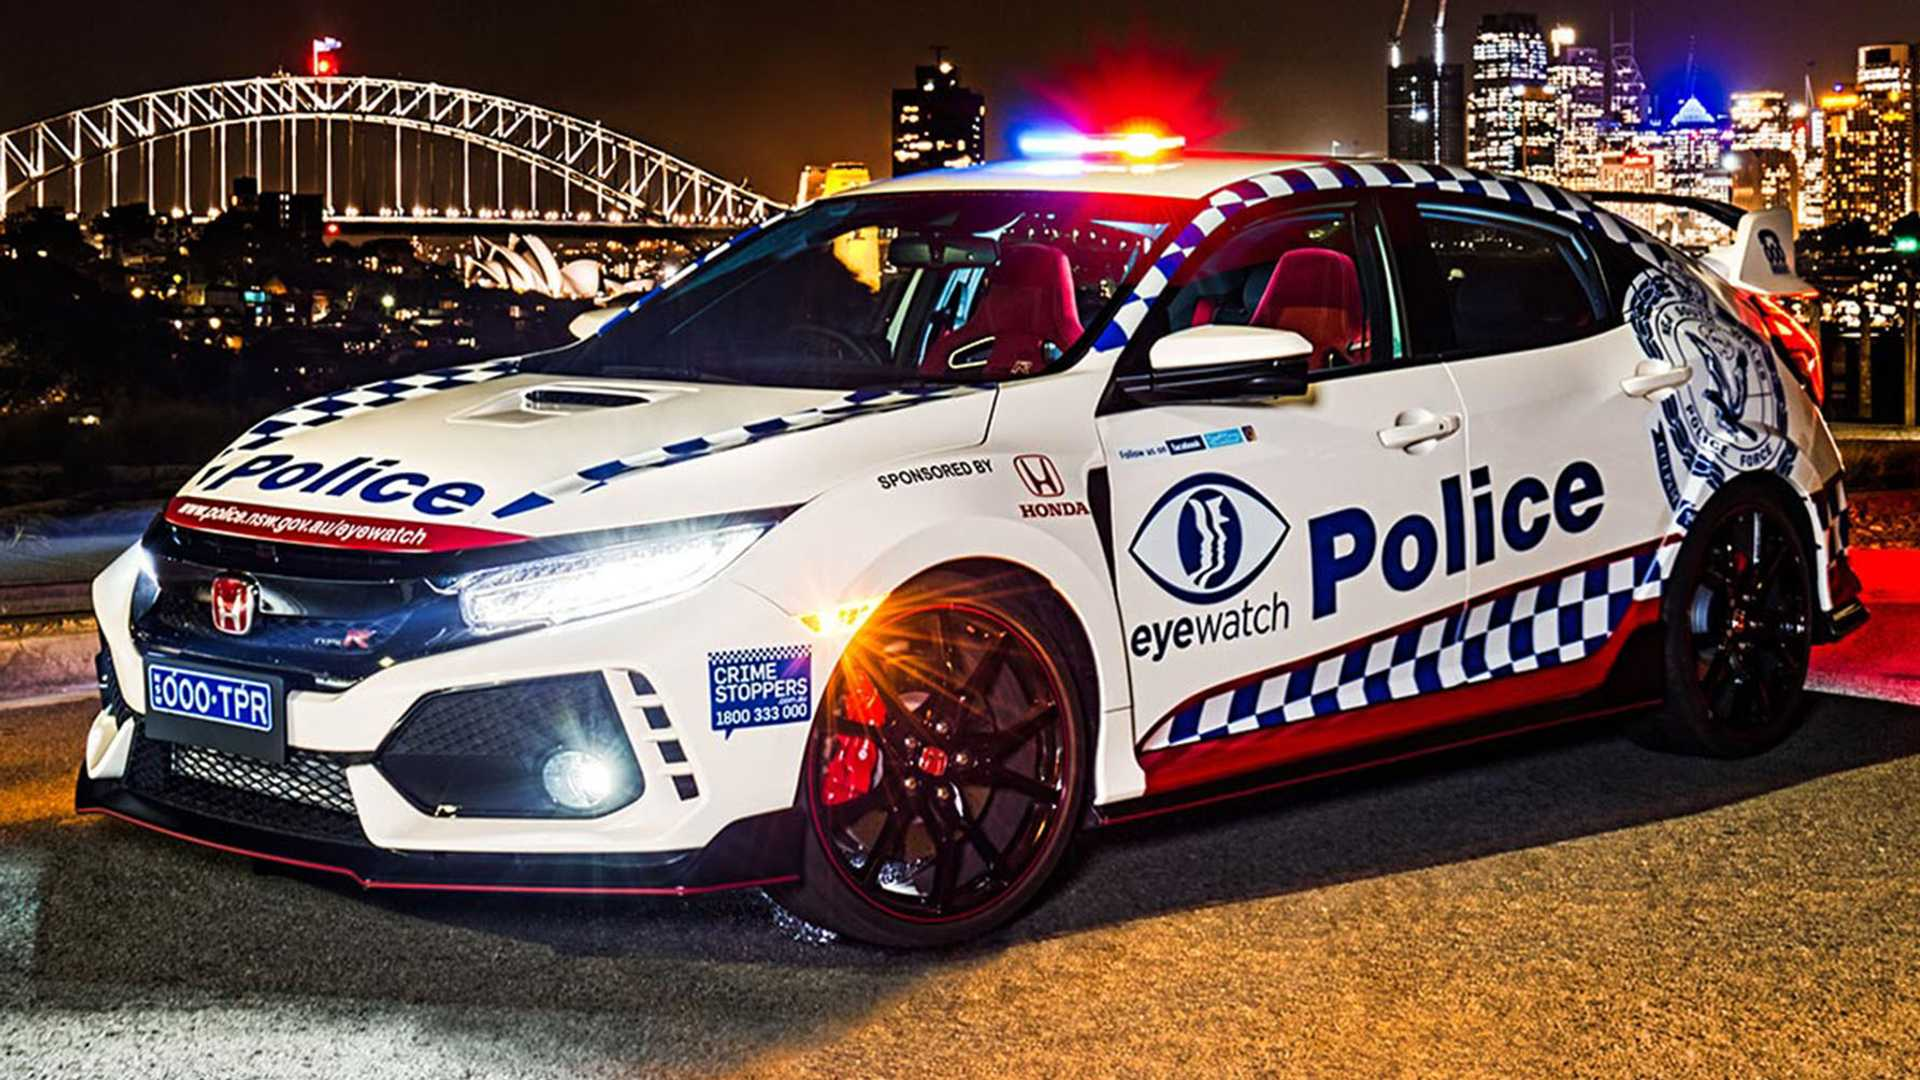 Honda Civic Type R enlists with Police in Australia